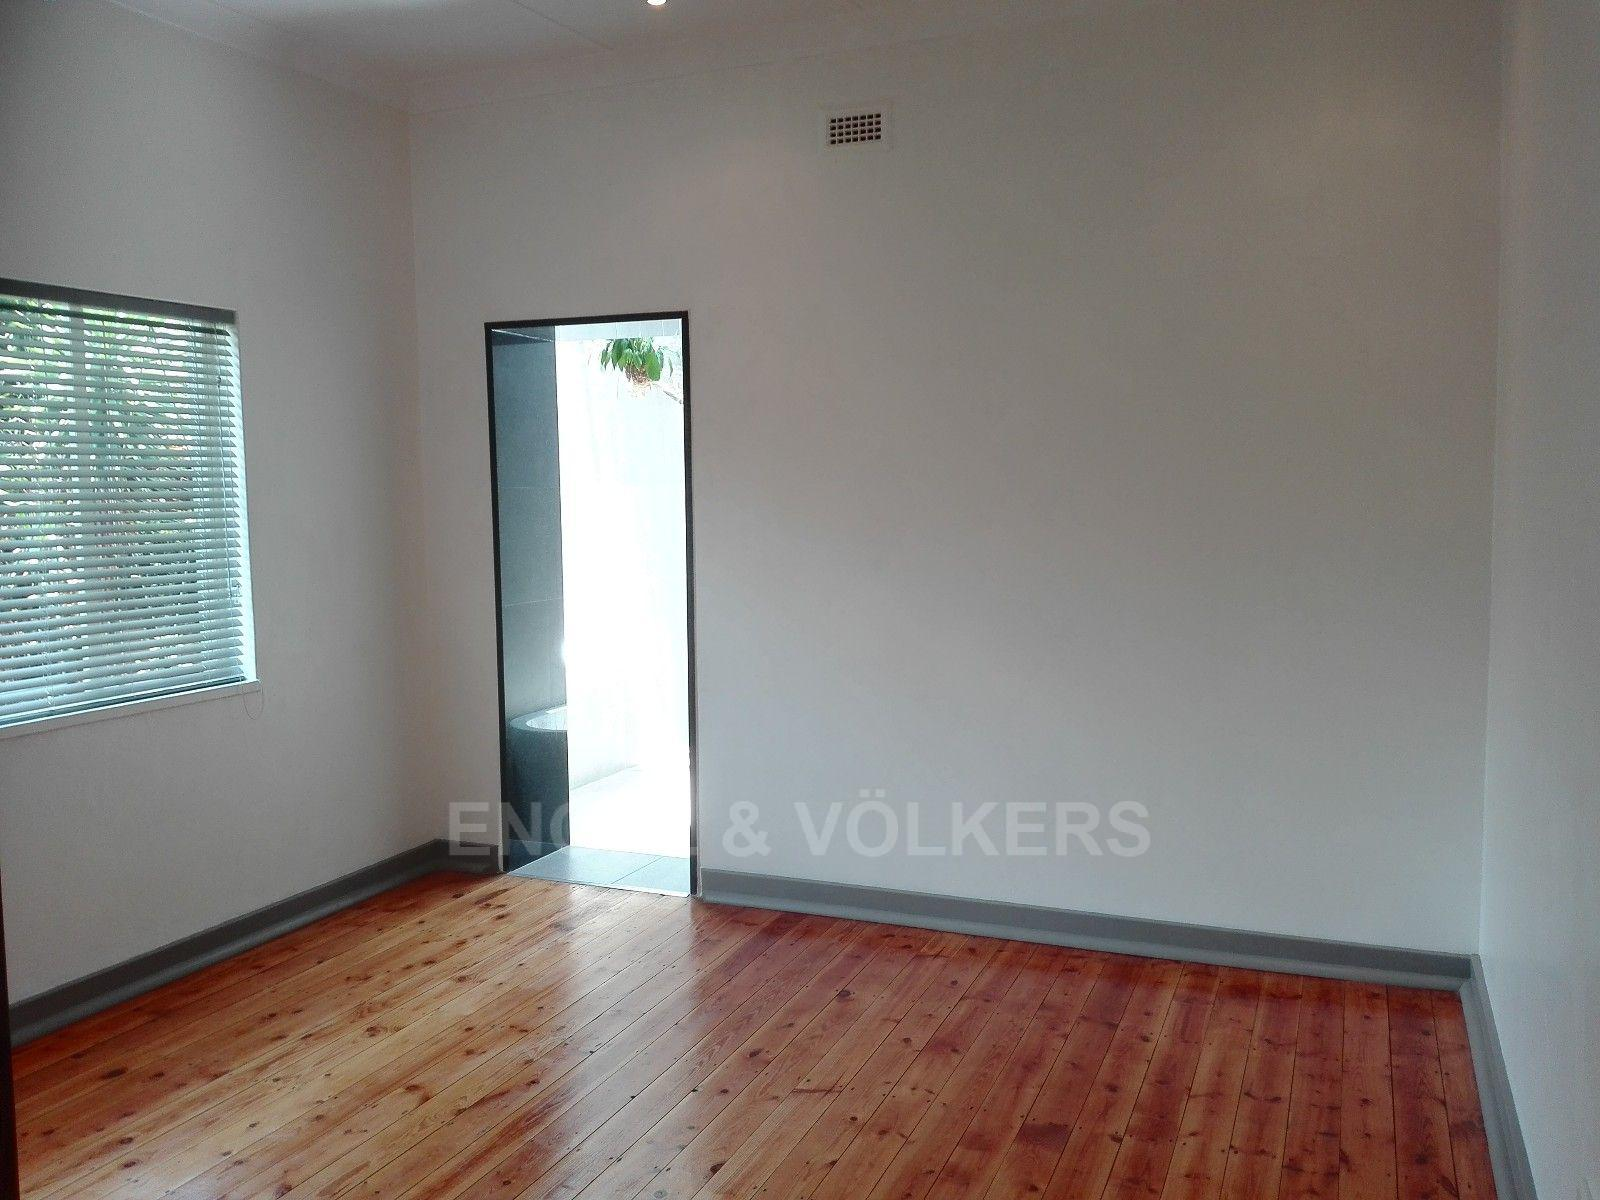 Heilige Akker property for sale. Ref No: 13466234. Picture no 18